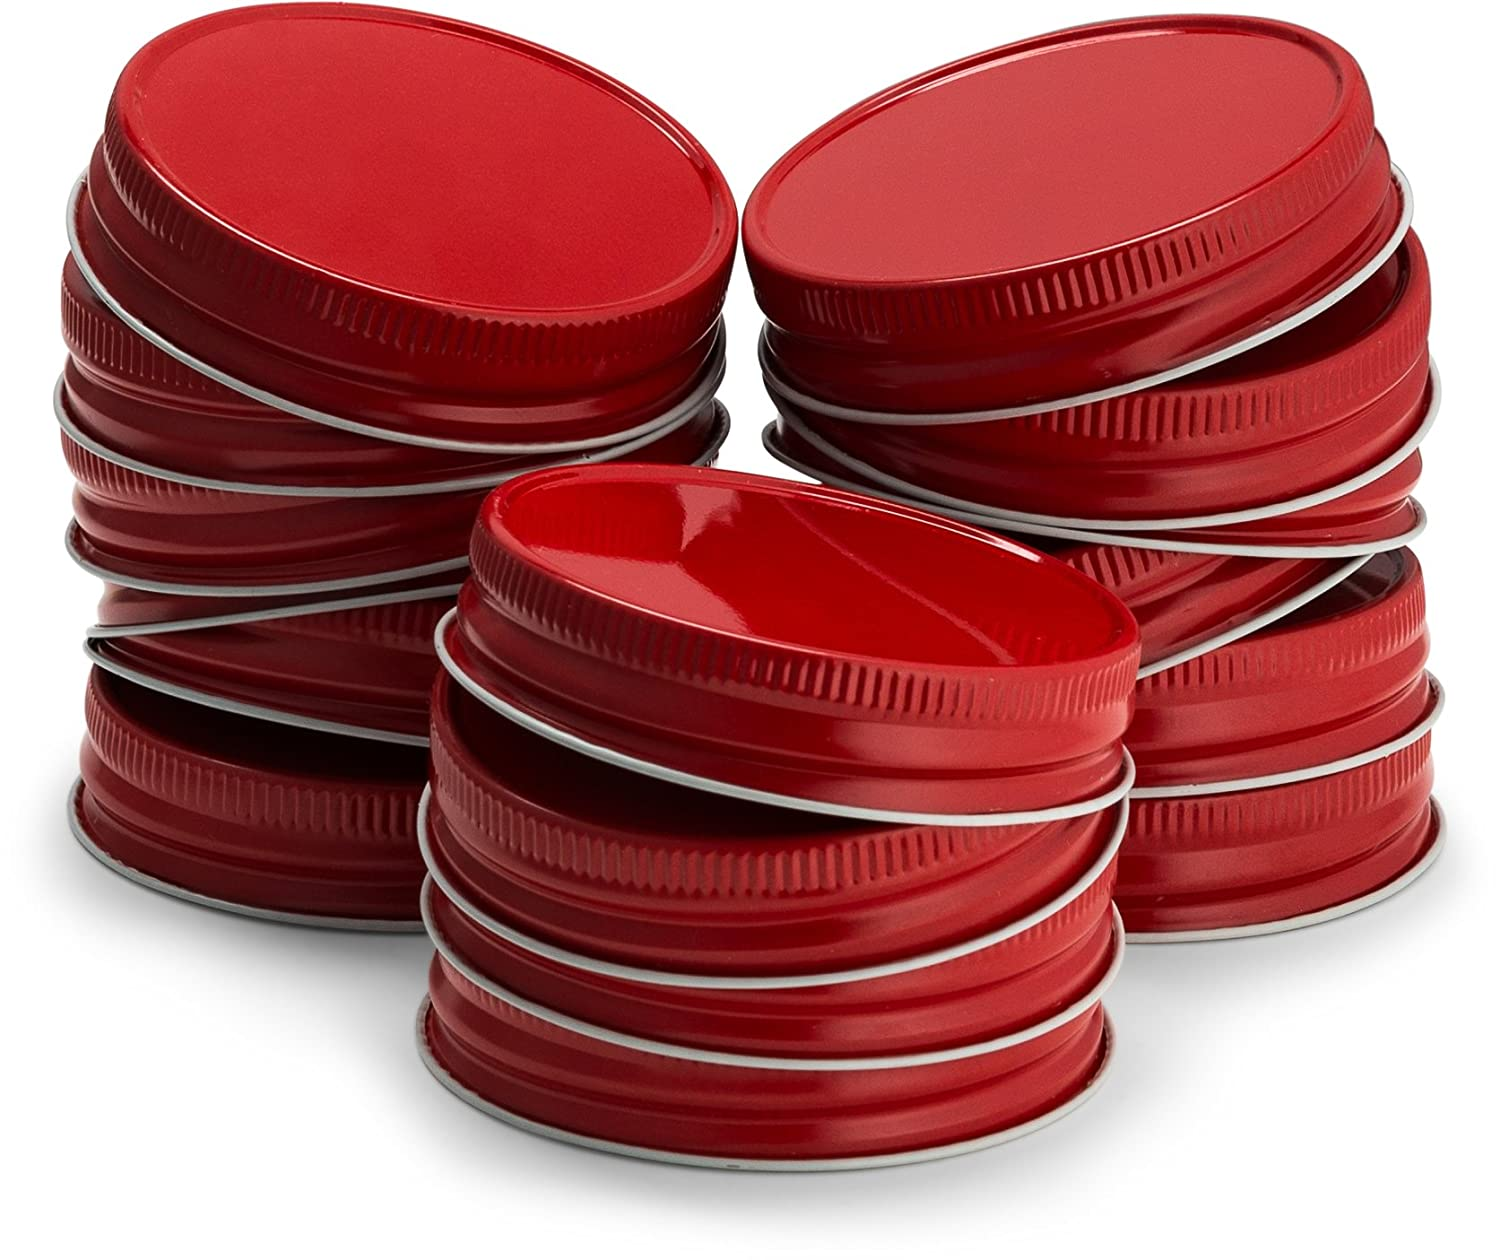 KooK Mason Jar Lids Regular Mouth, Leak Proof and Secure, Red, Gold, Silver, White, 16 pack (Gold)